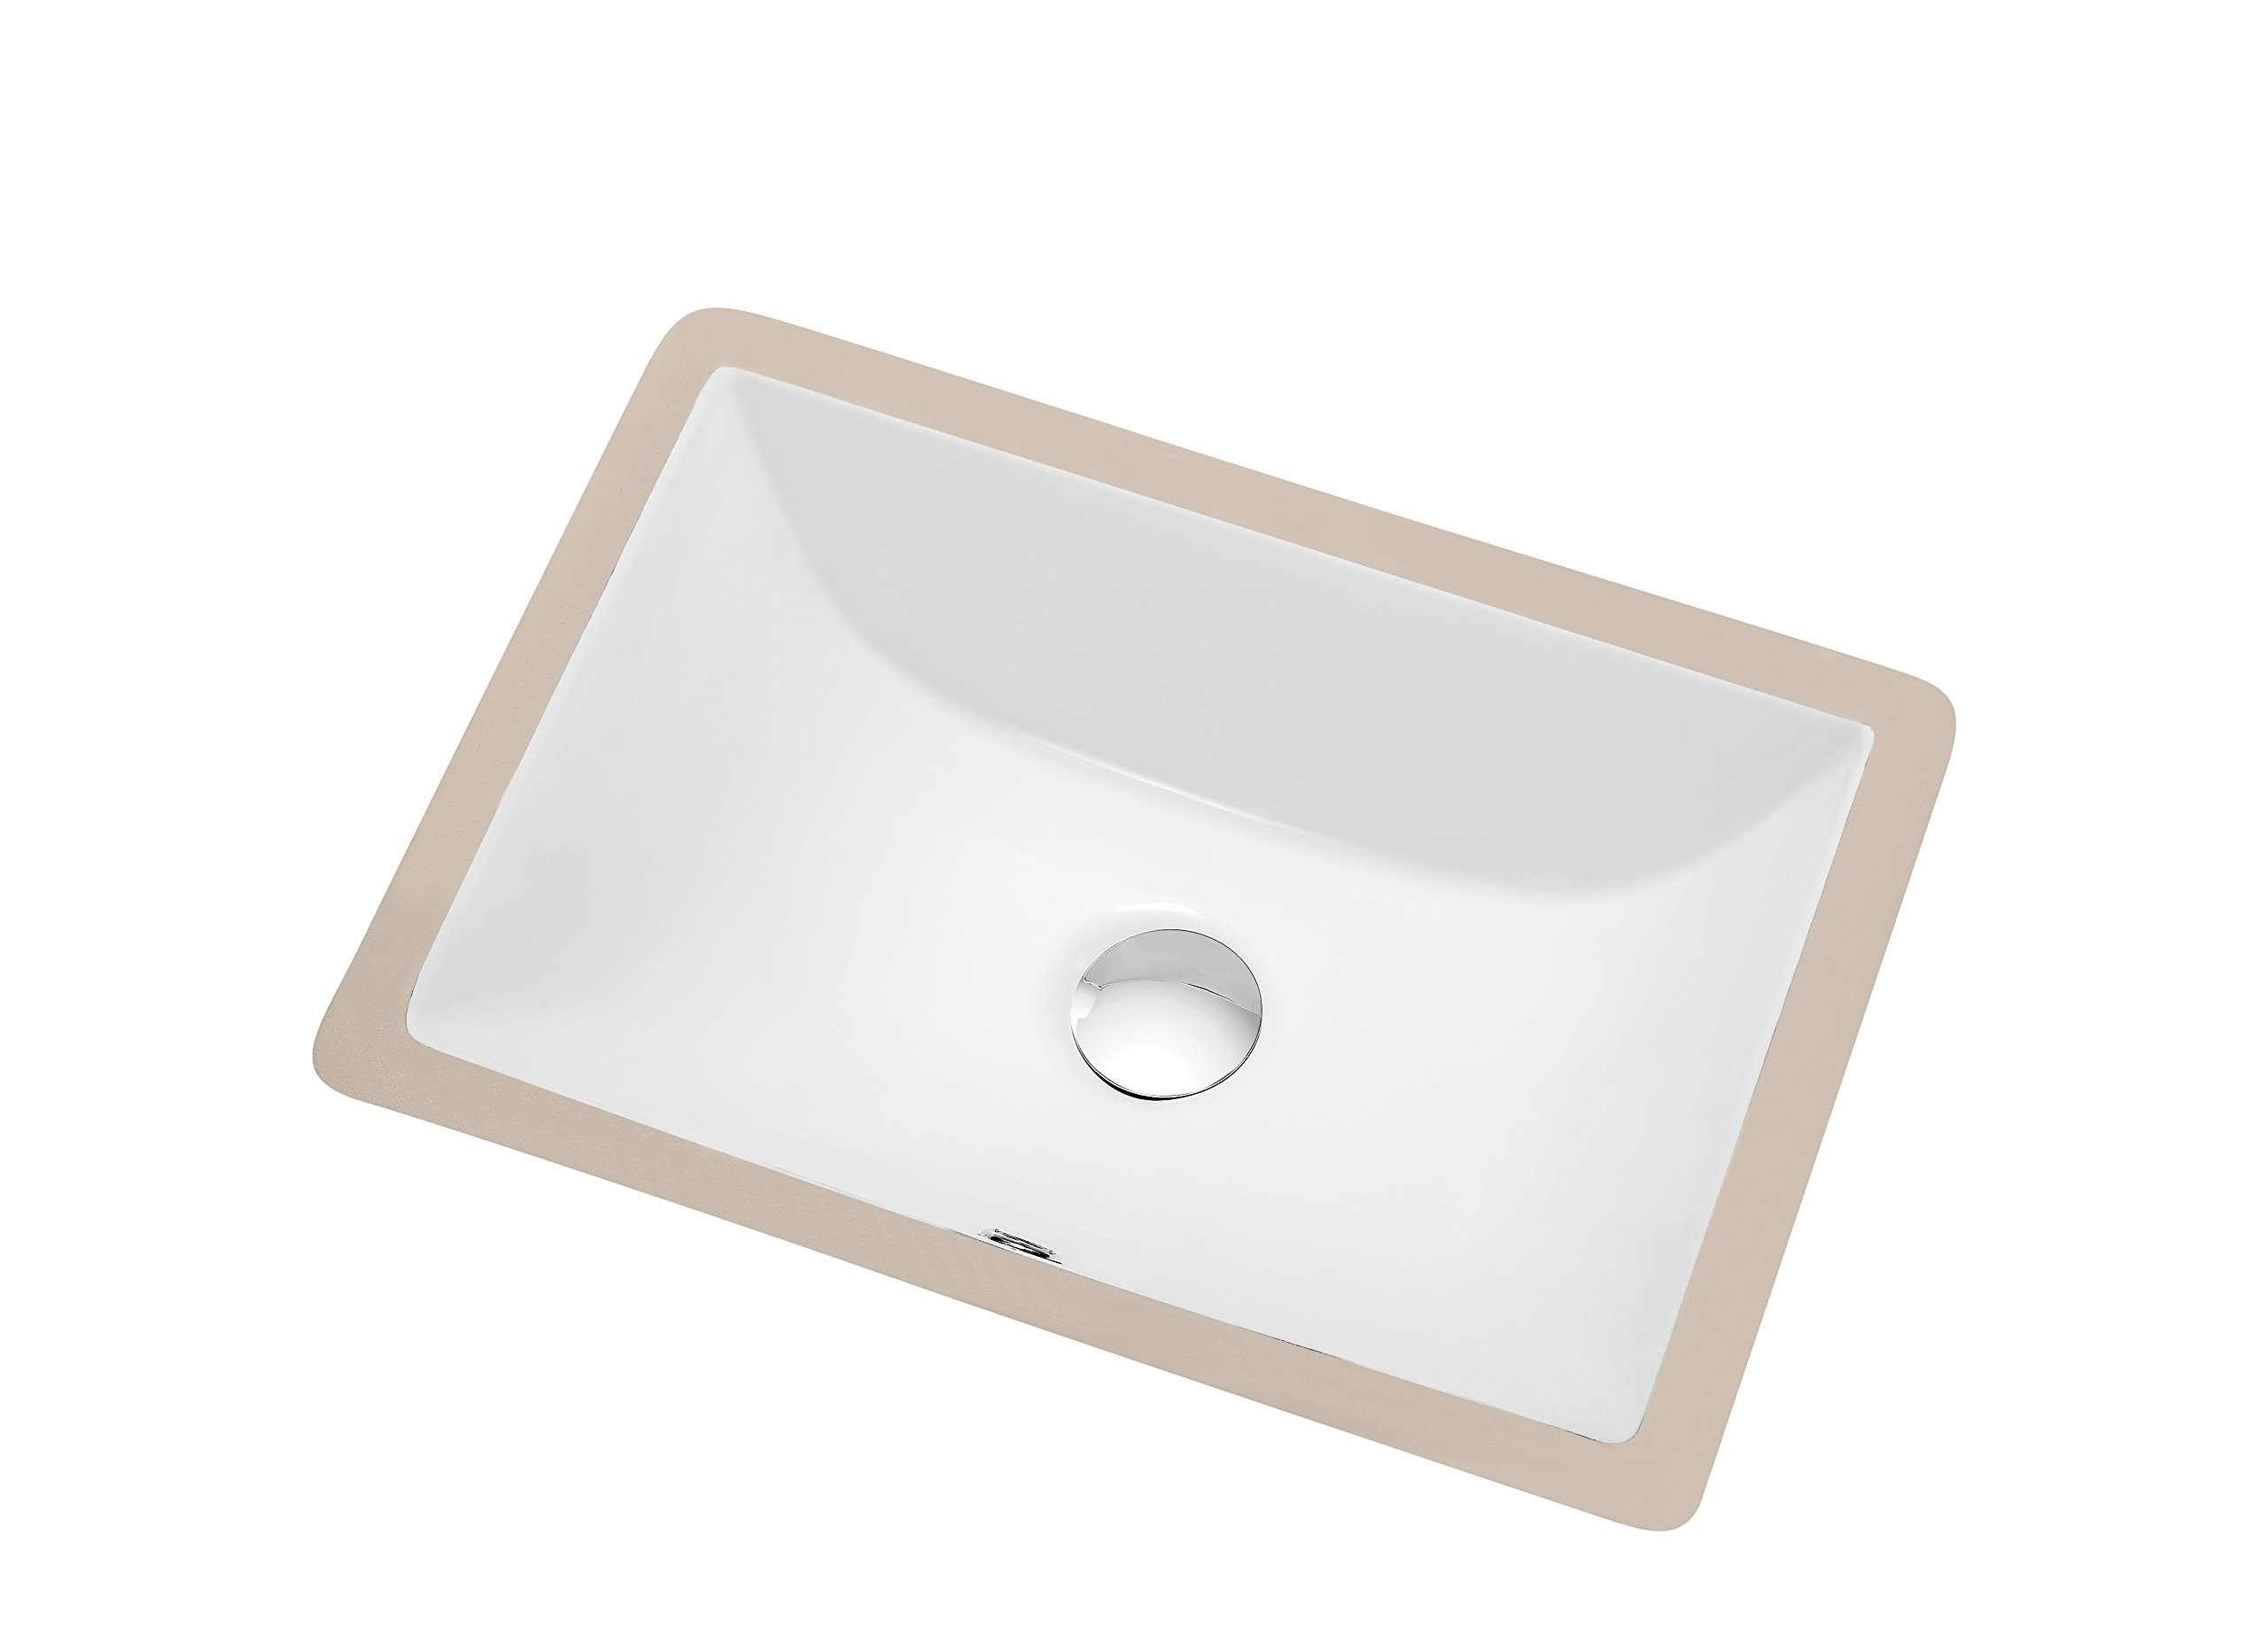 Dawn CUSN015000 Under Counter Rectangle Ceramic Basin with Overflow, White by Dawn